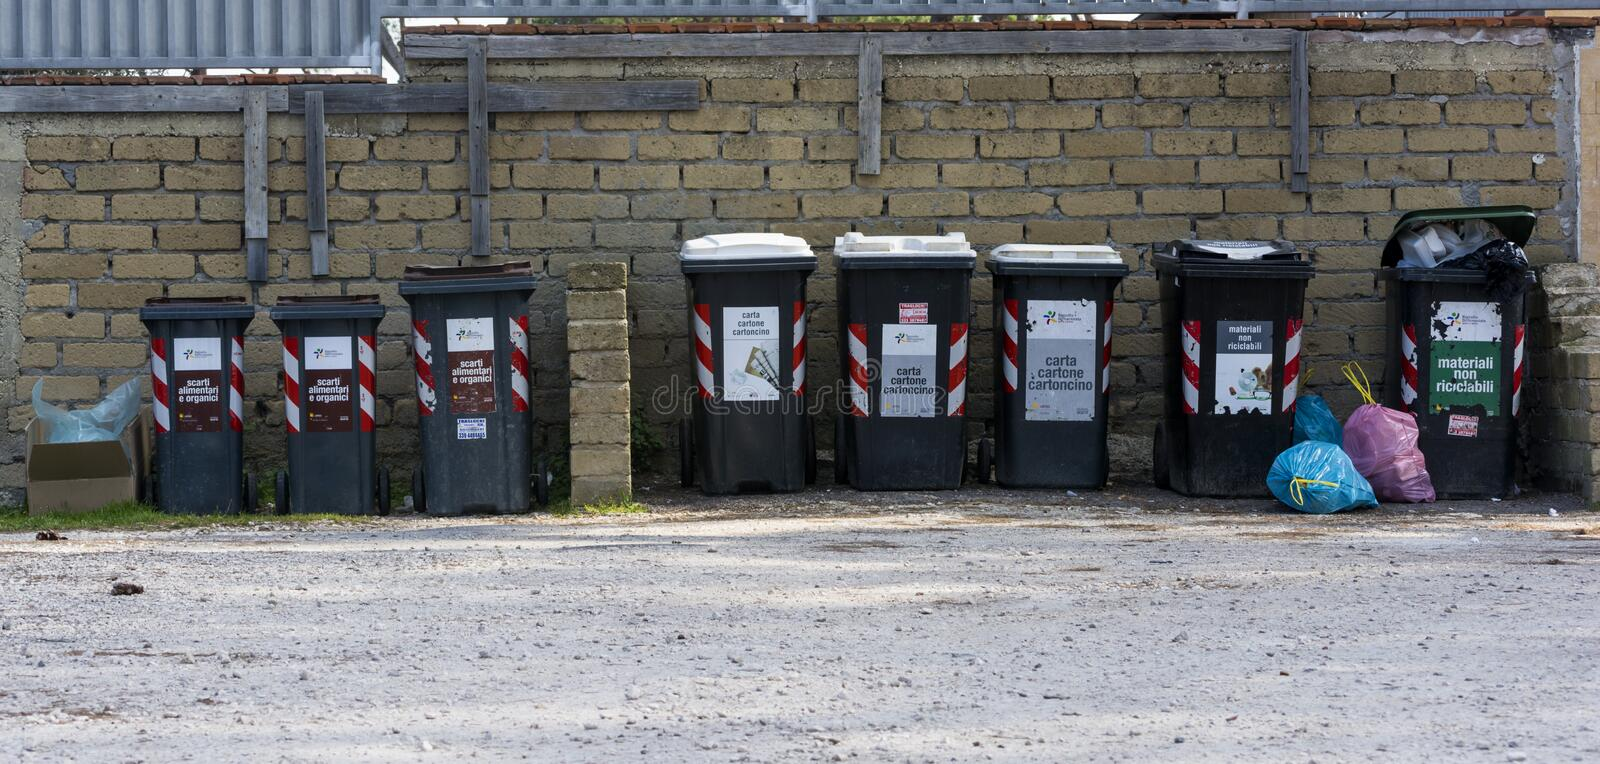 Rubbish bins of toxic waste. Row of rubbish bins of toxic waste along a road to Rome in Italy royalty free stock photo